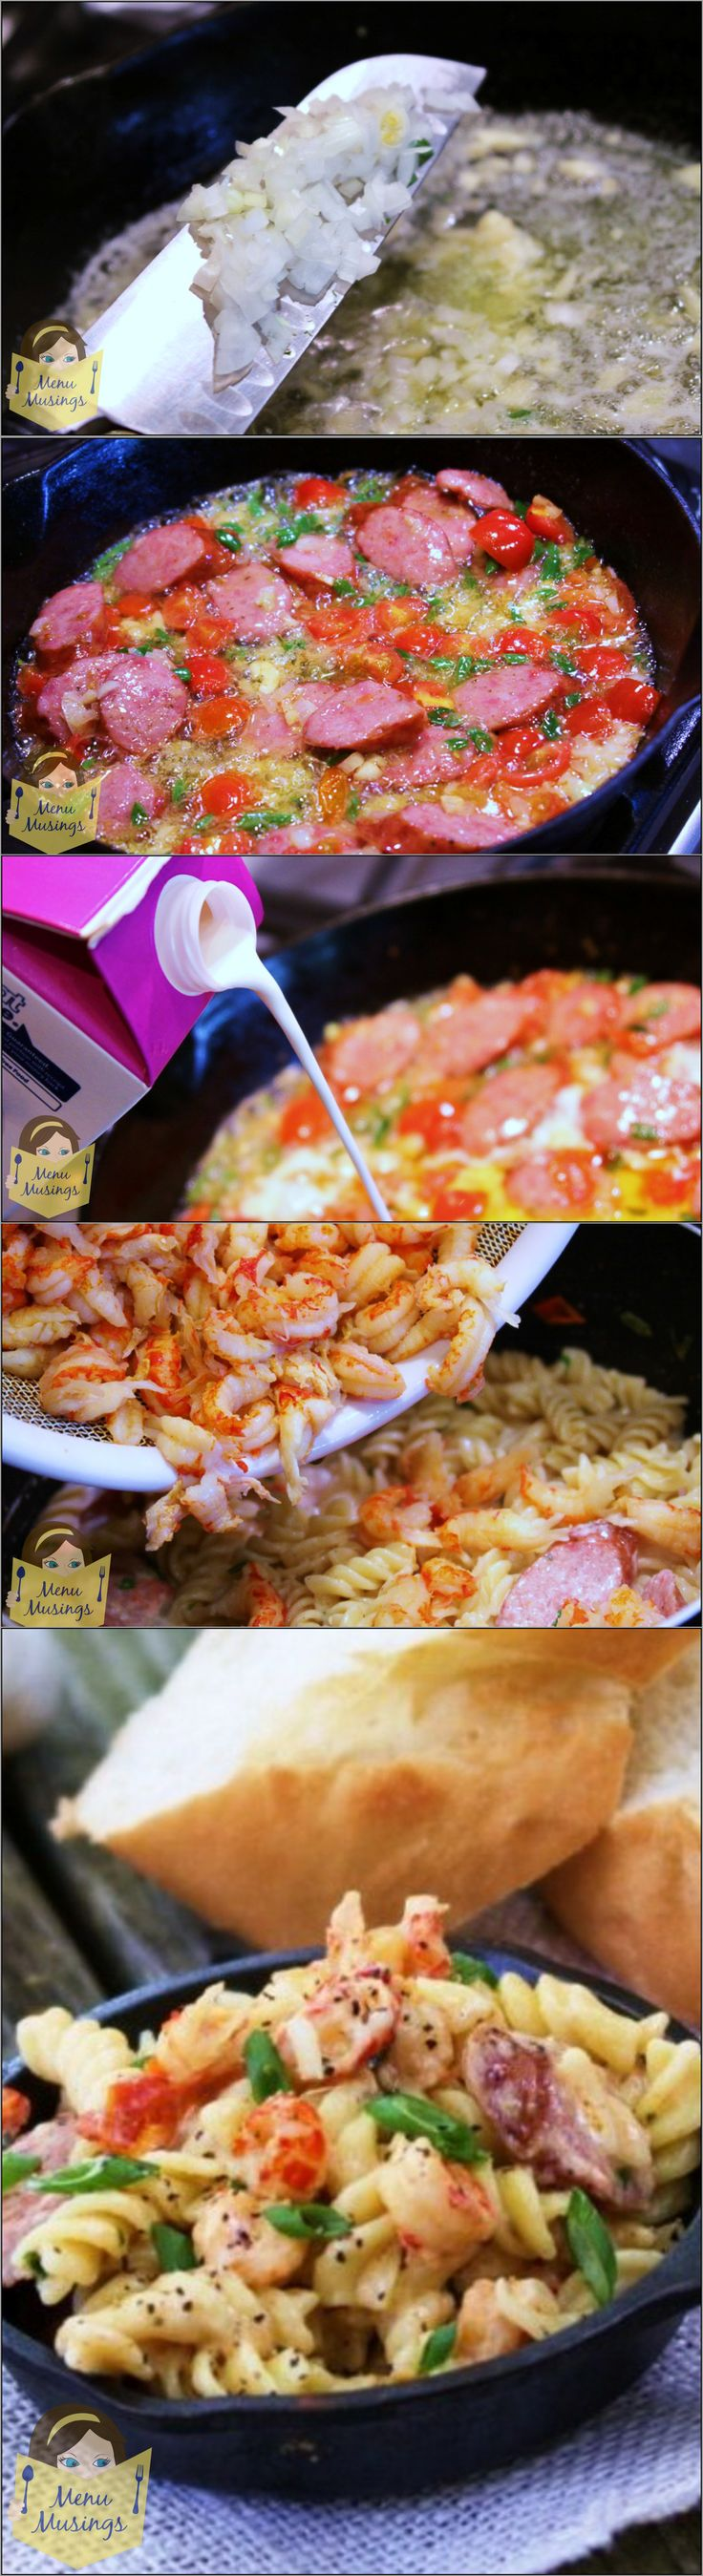 "Crawfish Monica - our favorite dish from the New Orleans Jazz Fest in a step-by-step ""make at home"" version!  It's creamy, spicy as you want it to be, and way jazzy!  Sub chicken if you are allergic or adverse to seafood.  <3 <3"